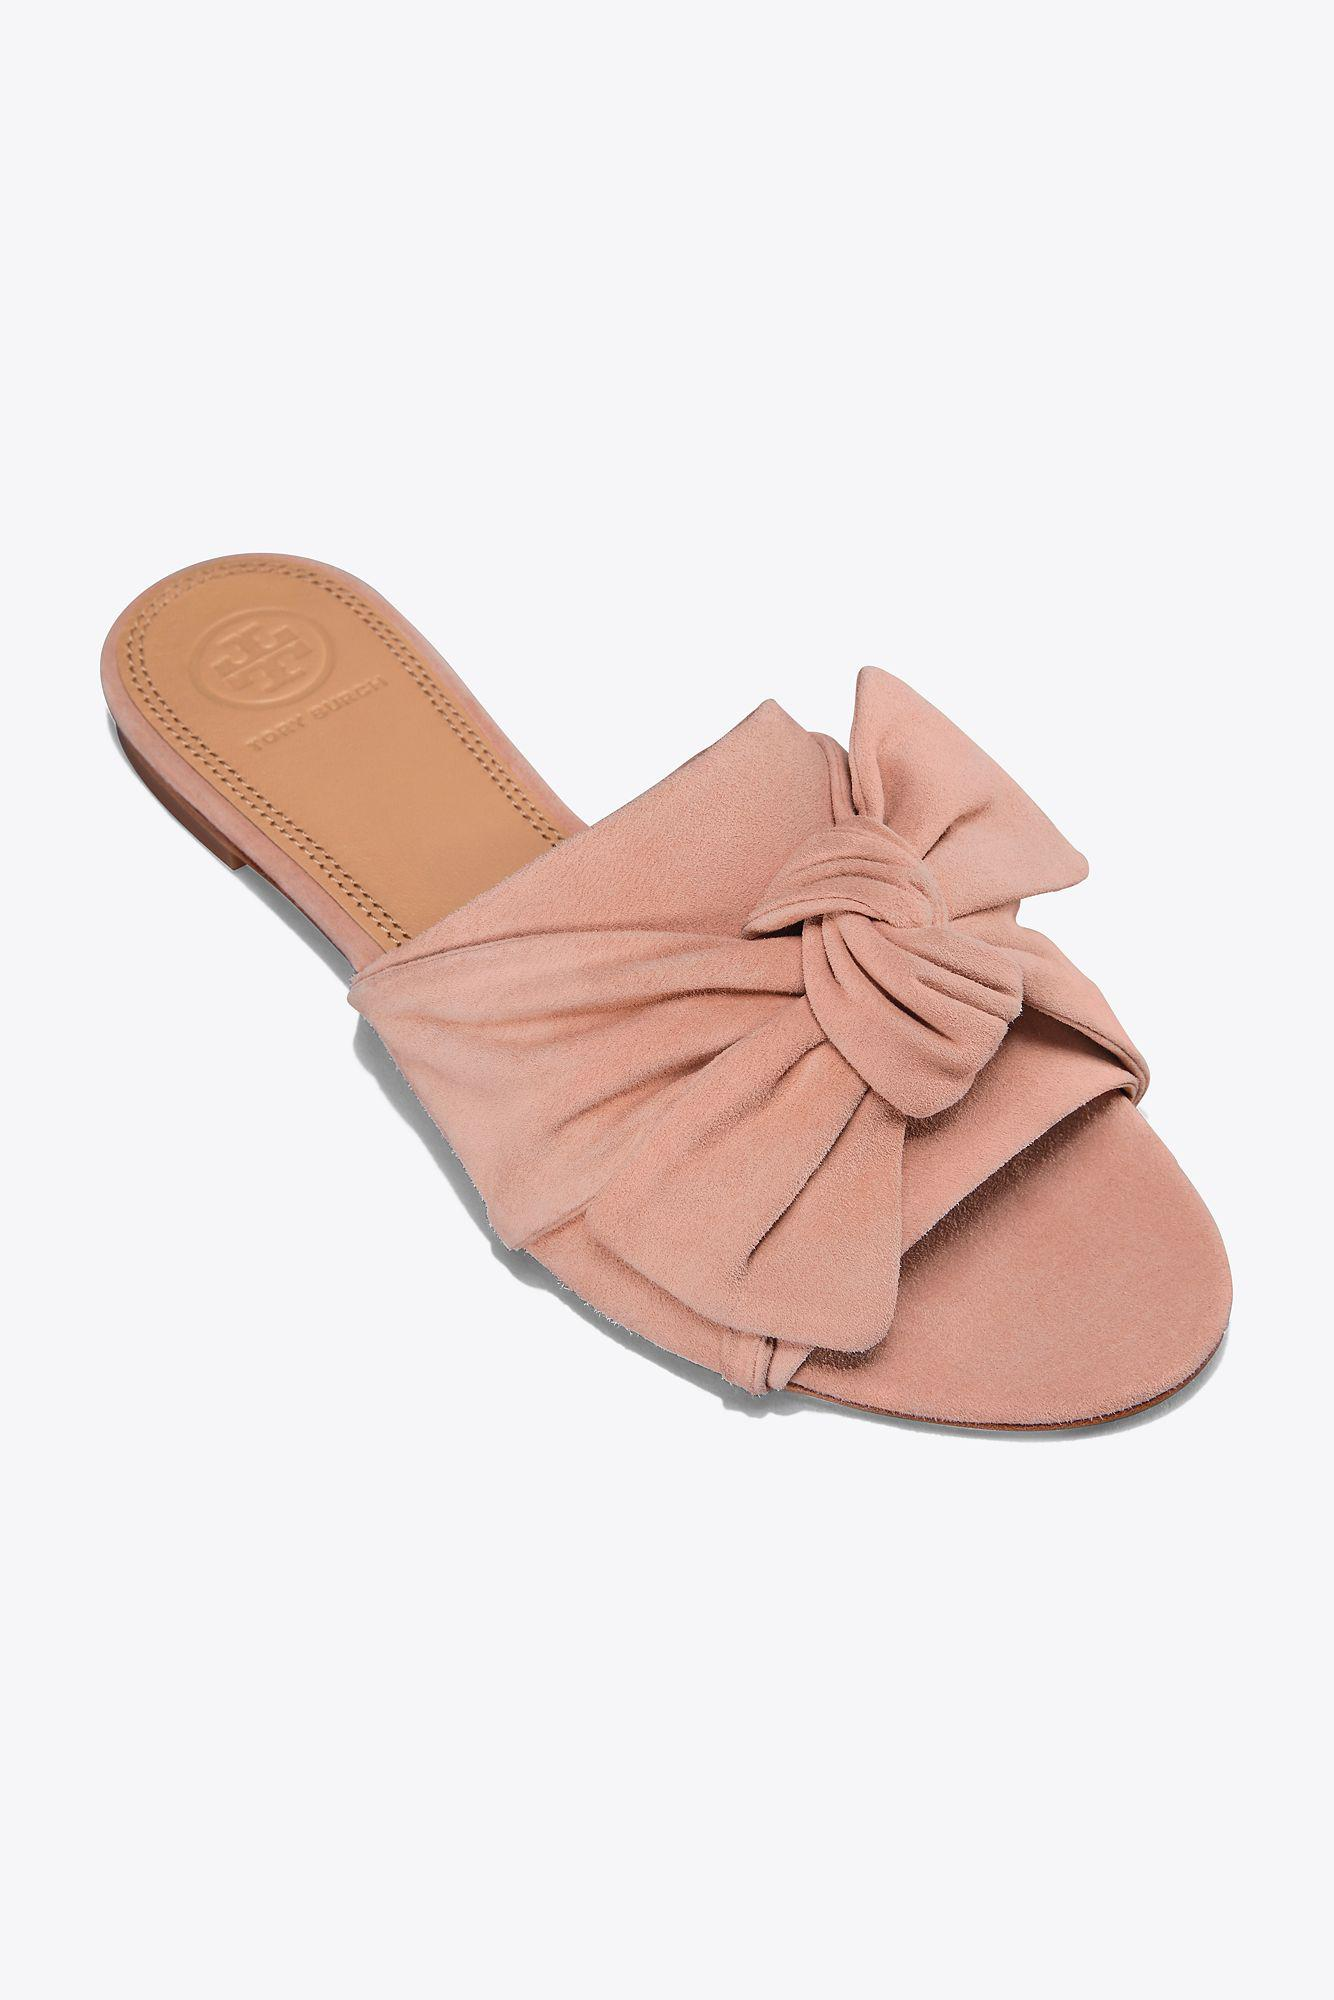 4db6f0409f02b3 Lyst - Tory Burch Annabelle Suede Bow Slide in Pink